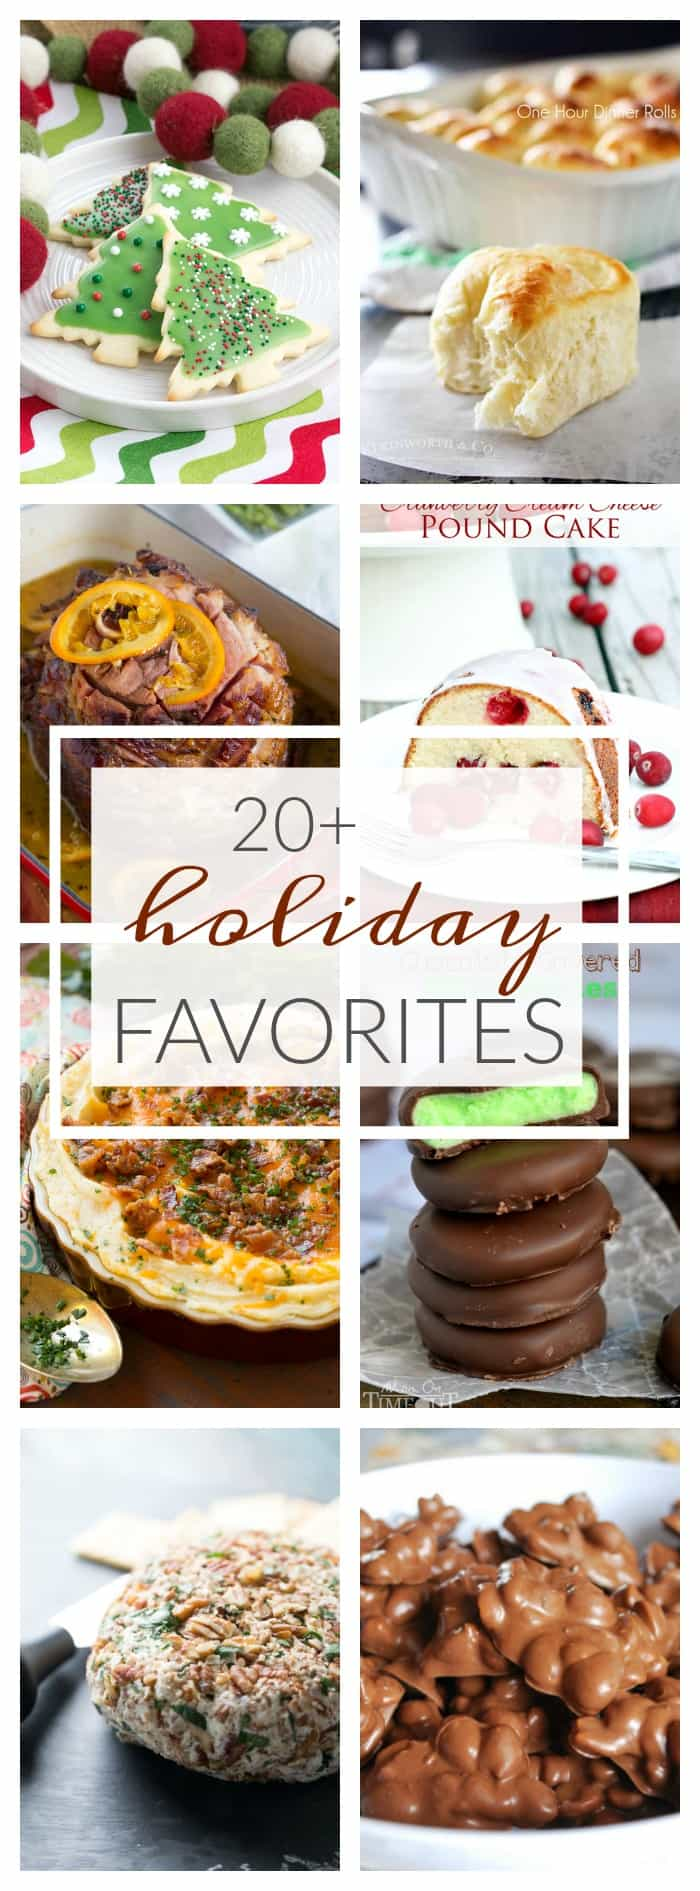 'Tis the season when all friends and family come together to celebrate the holidays and there's no better way than with 20 of My Favorite Holiday Recipes.